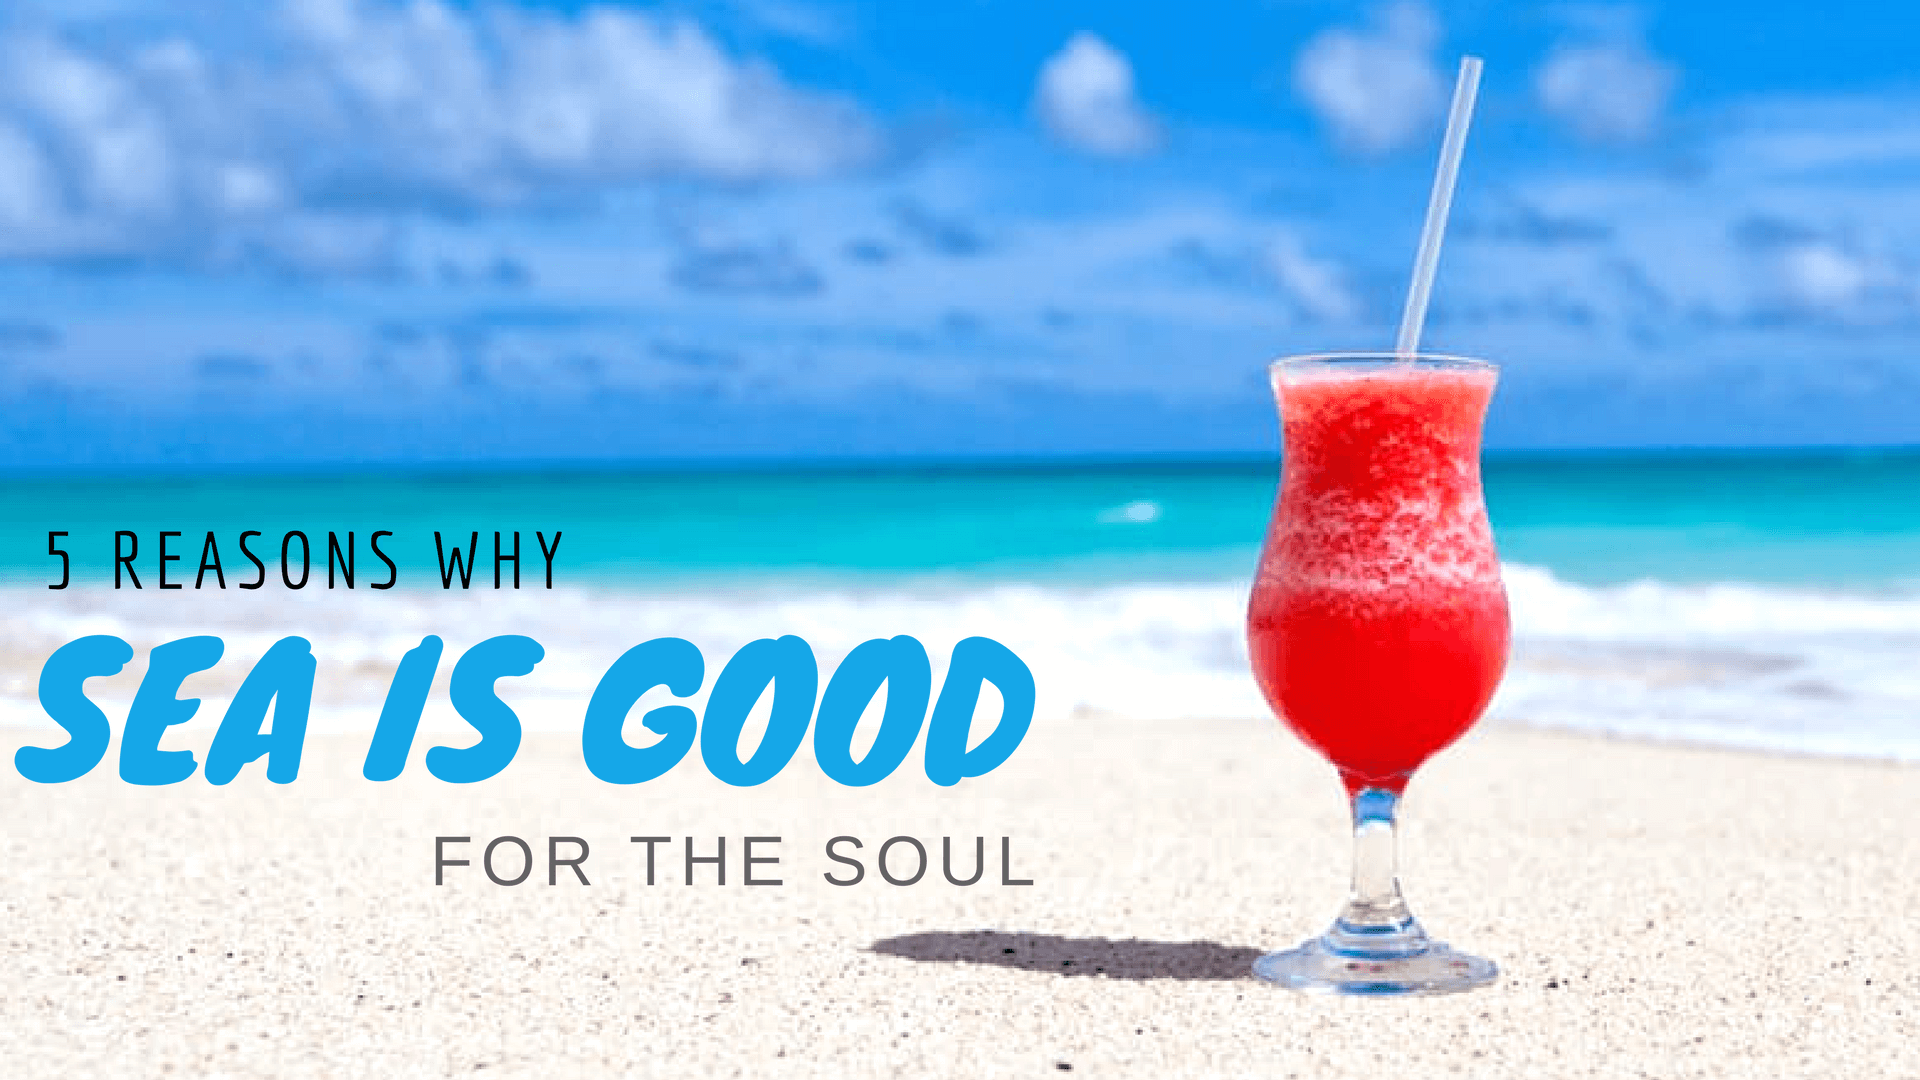 5 Reasons Why Sea is Good For The Soul